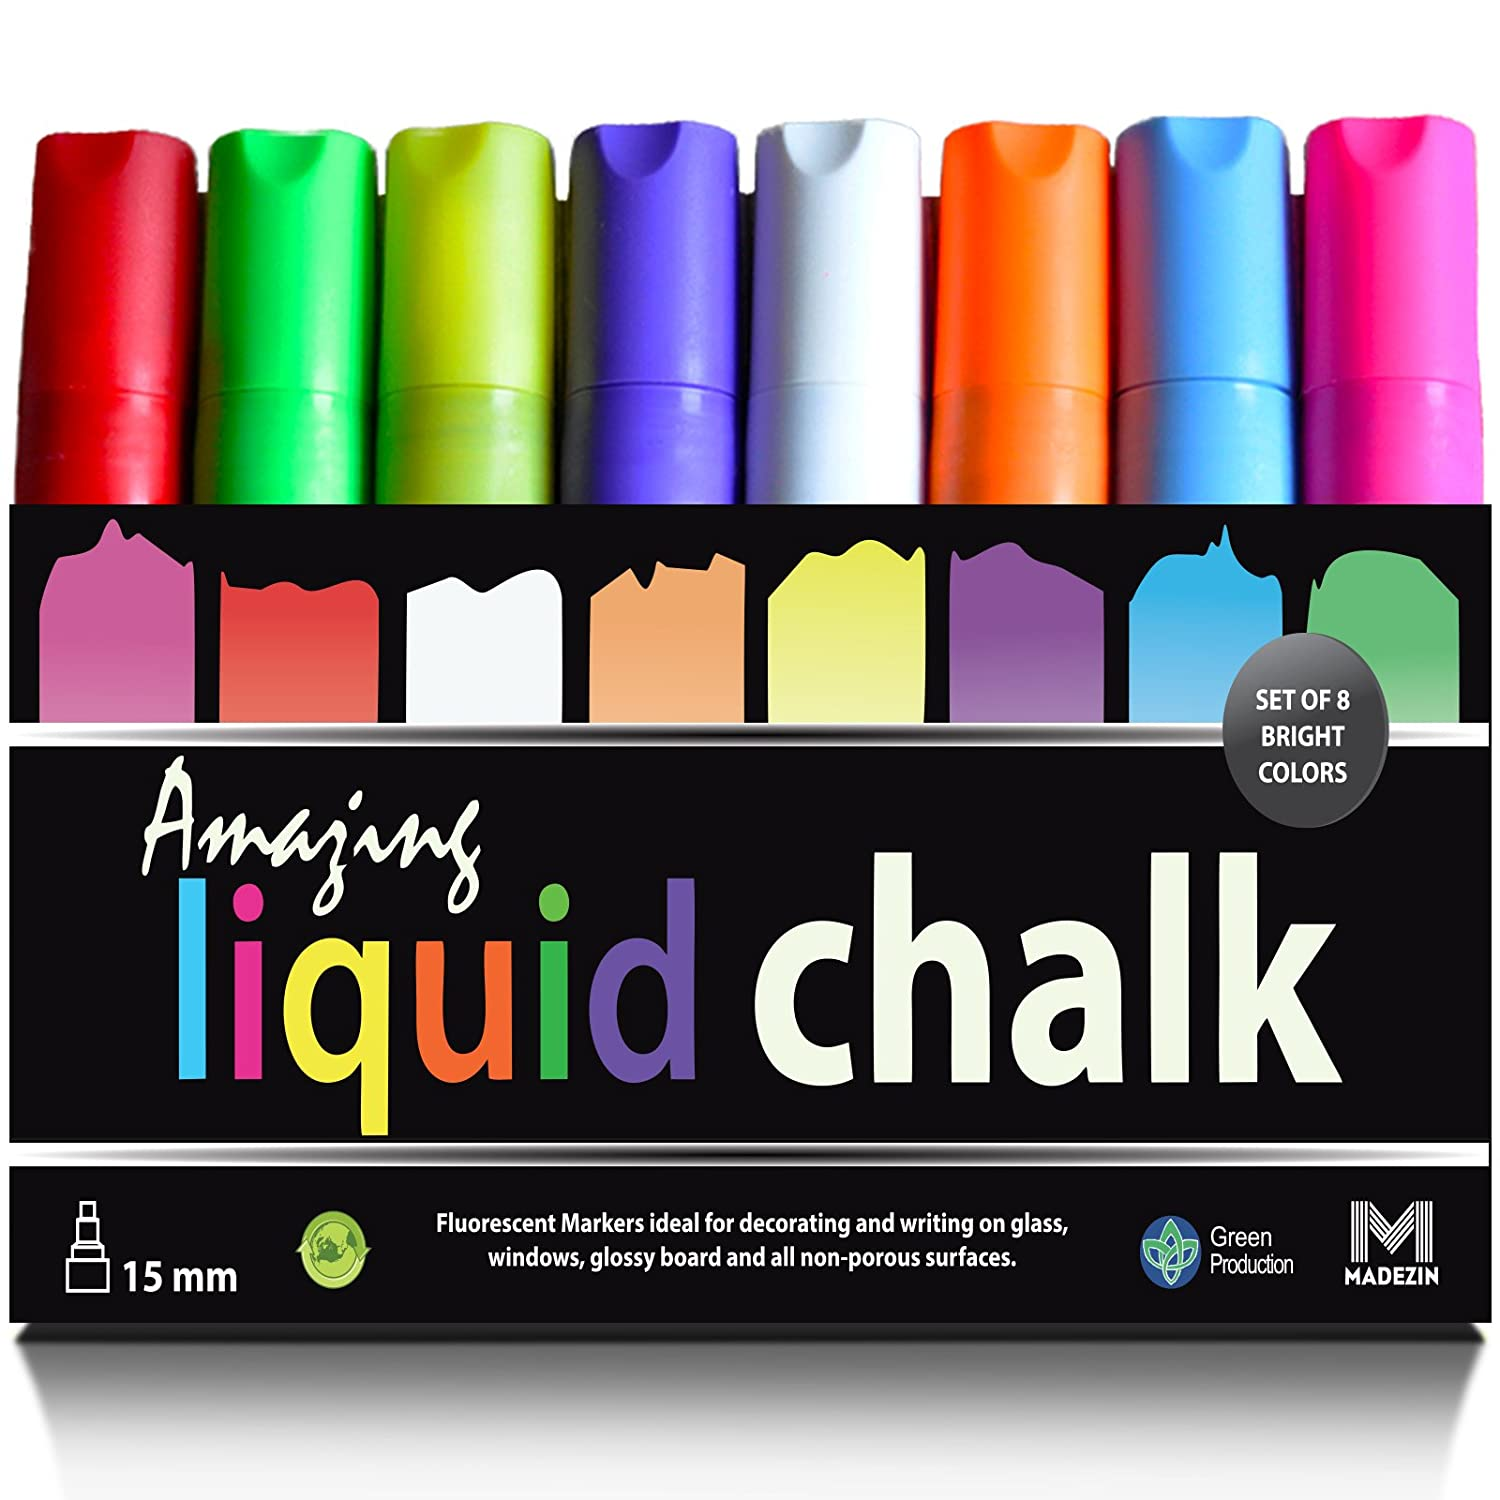 Amazing Liquid Chalk Markers 8 PACK Jumbo 3 in 1 Tip 15mm for Biggest & Boldest Lines Attract More